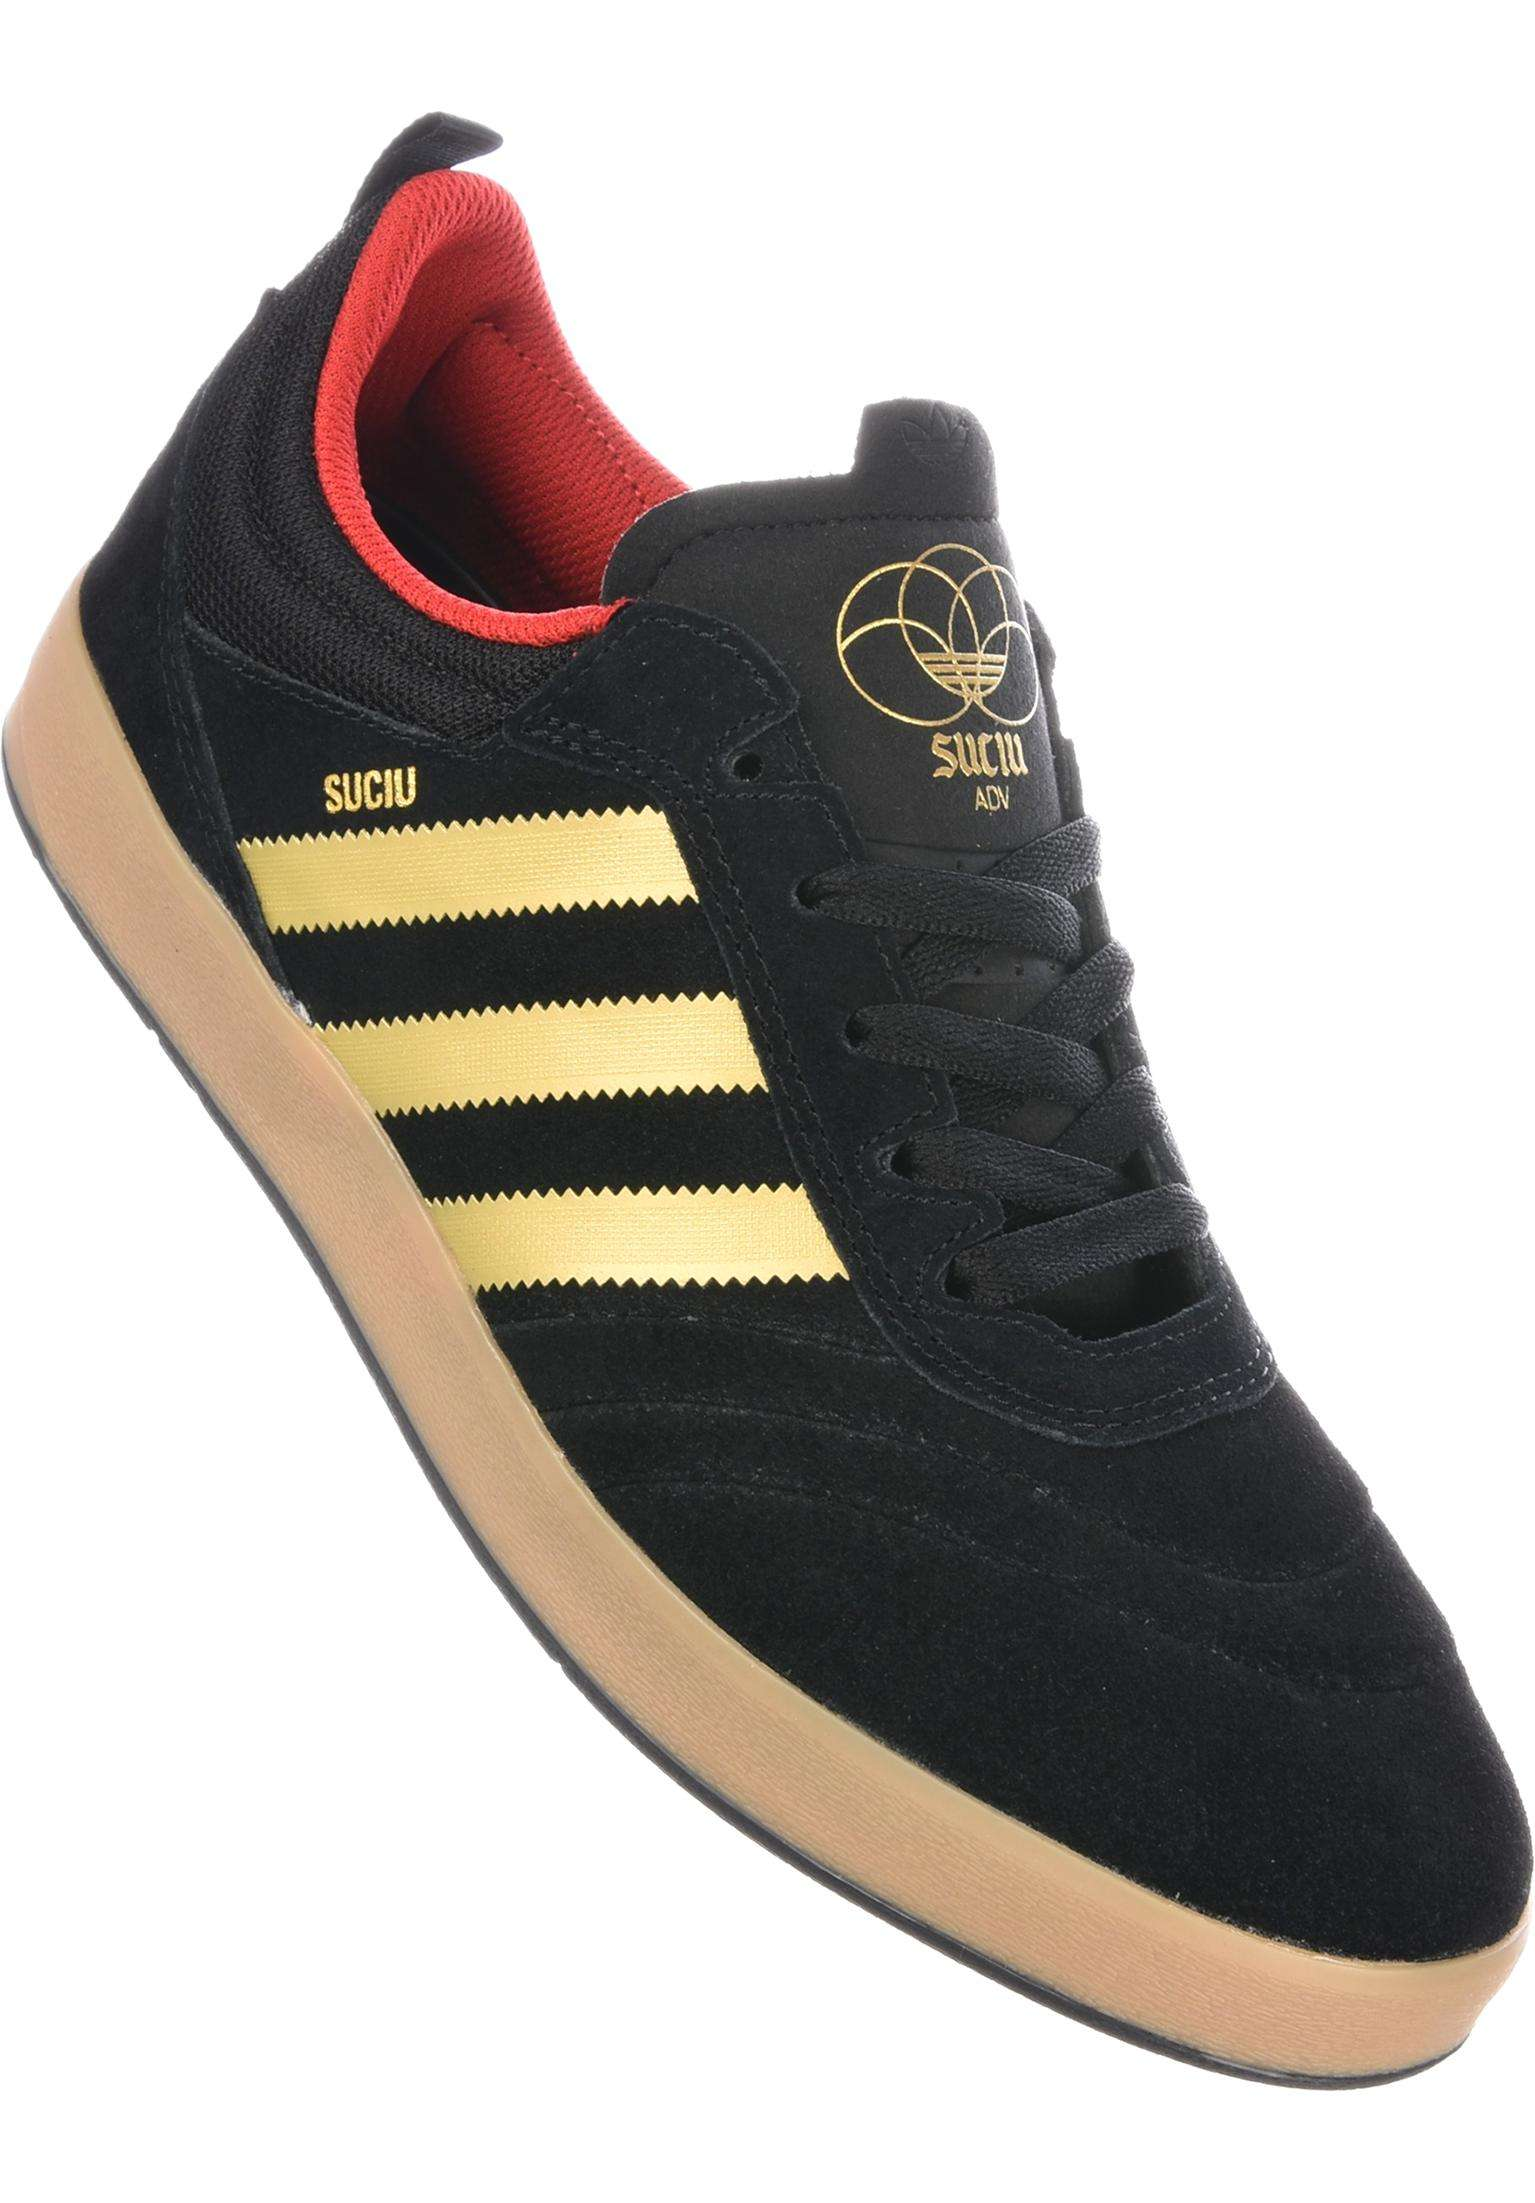 30b86e7edbe Suciu ADV adidas-skateboarding All Shoes in black-gold-gum for Men ...